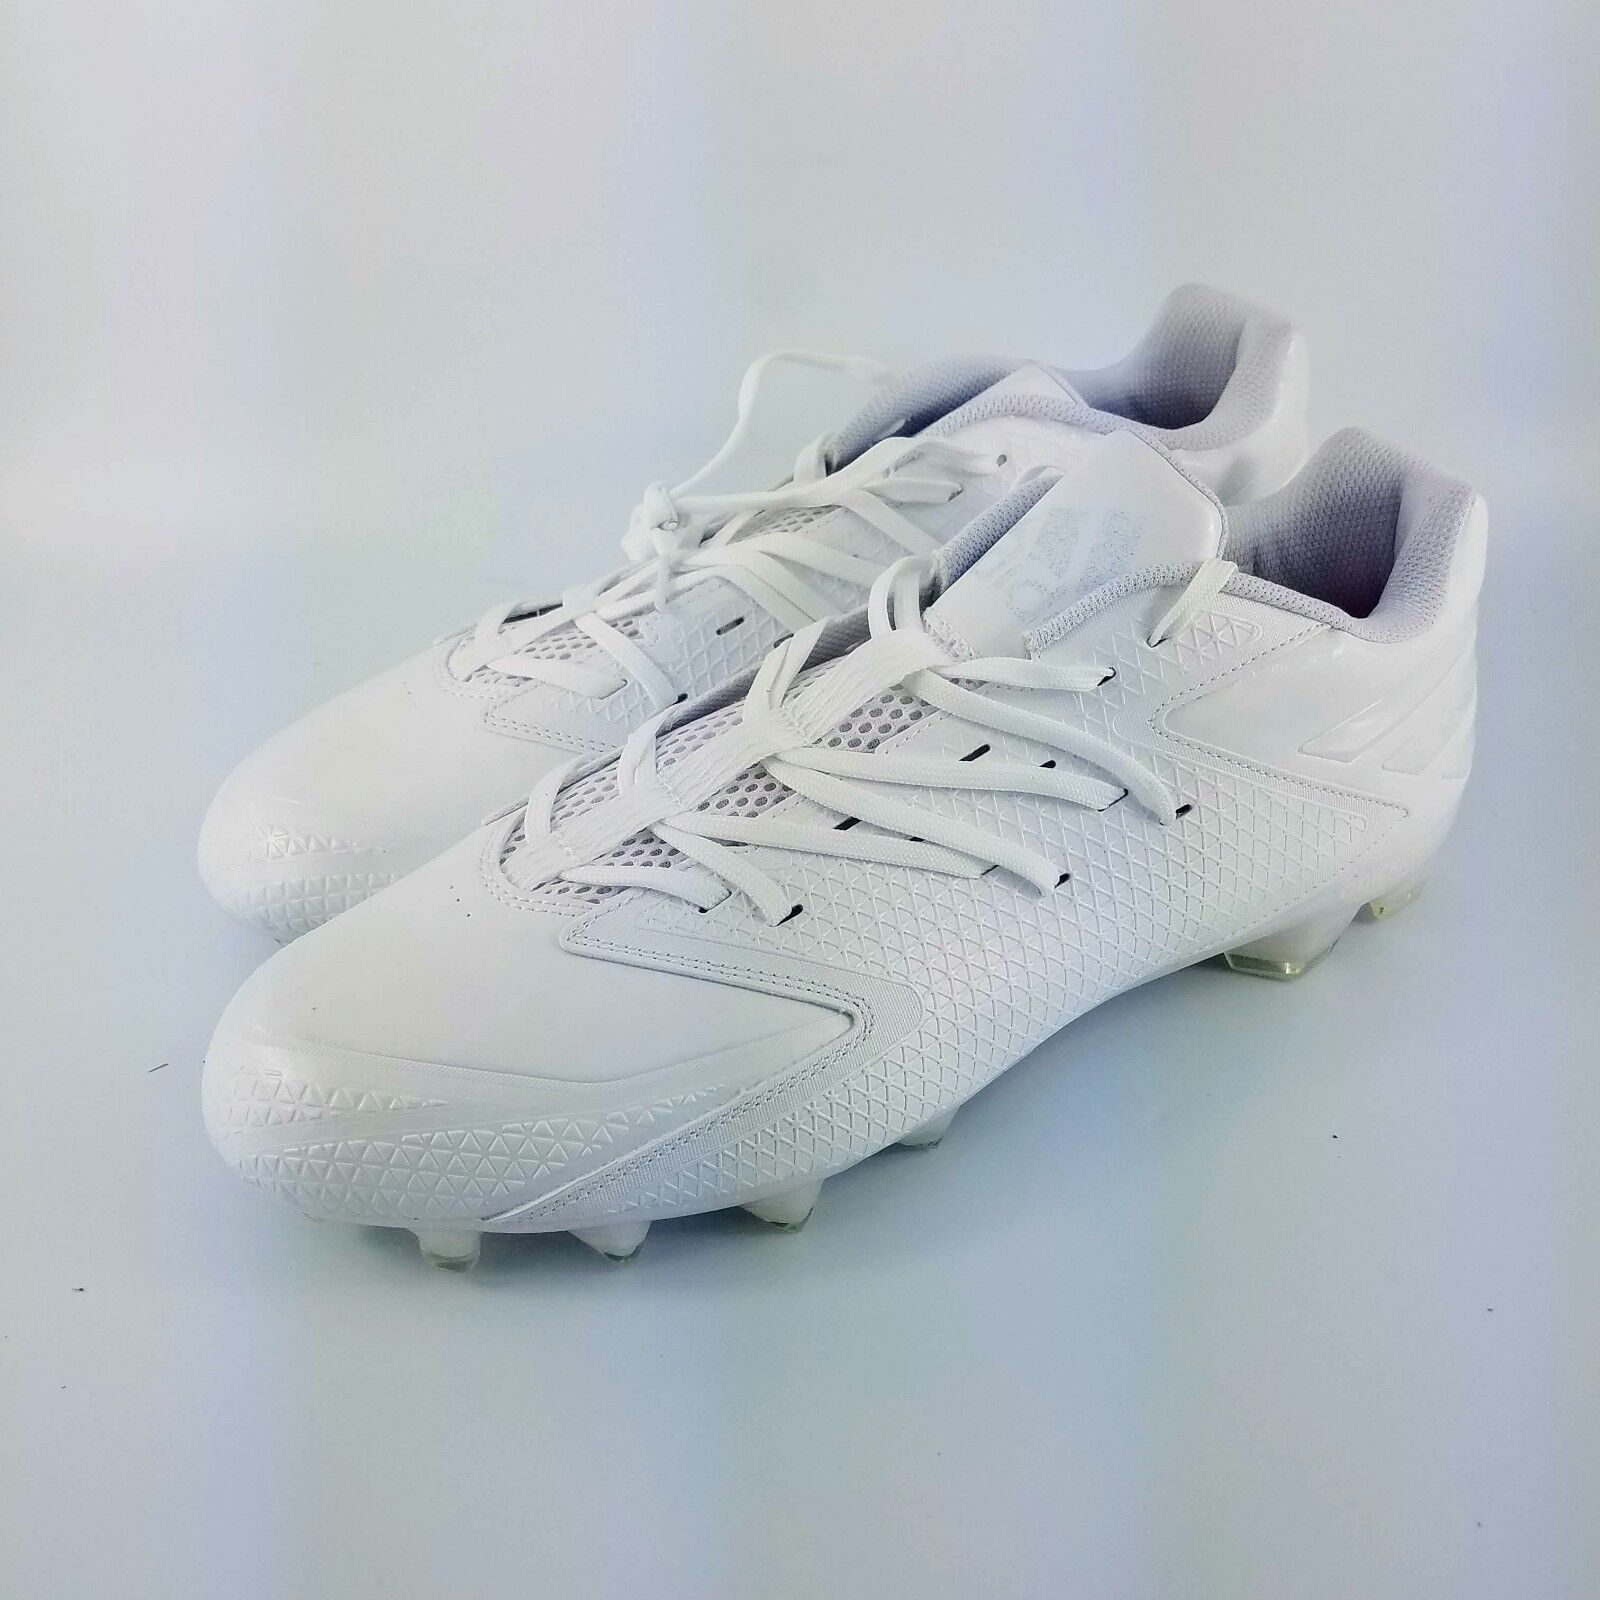 9289074ed58 Adidas X Carbon Low Football Cleats - White - Q16055 Size 15 - Freak ...